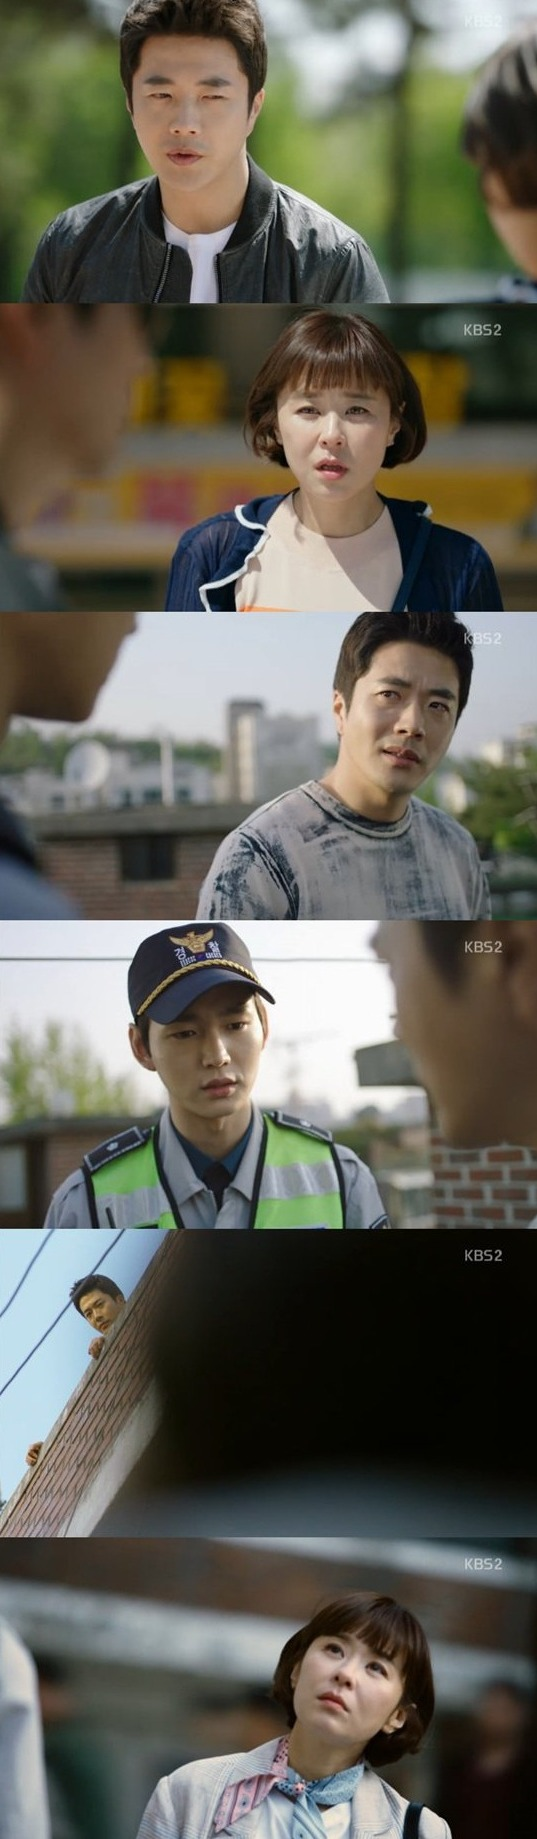 [Spoiler] Added episode 9 captures for the Korean drama 'Mystery Queen'